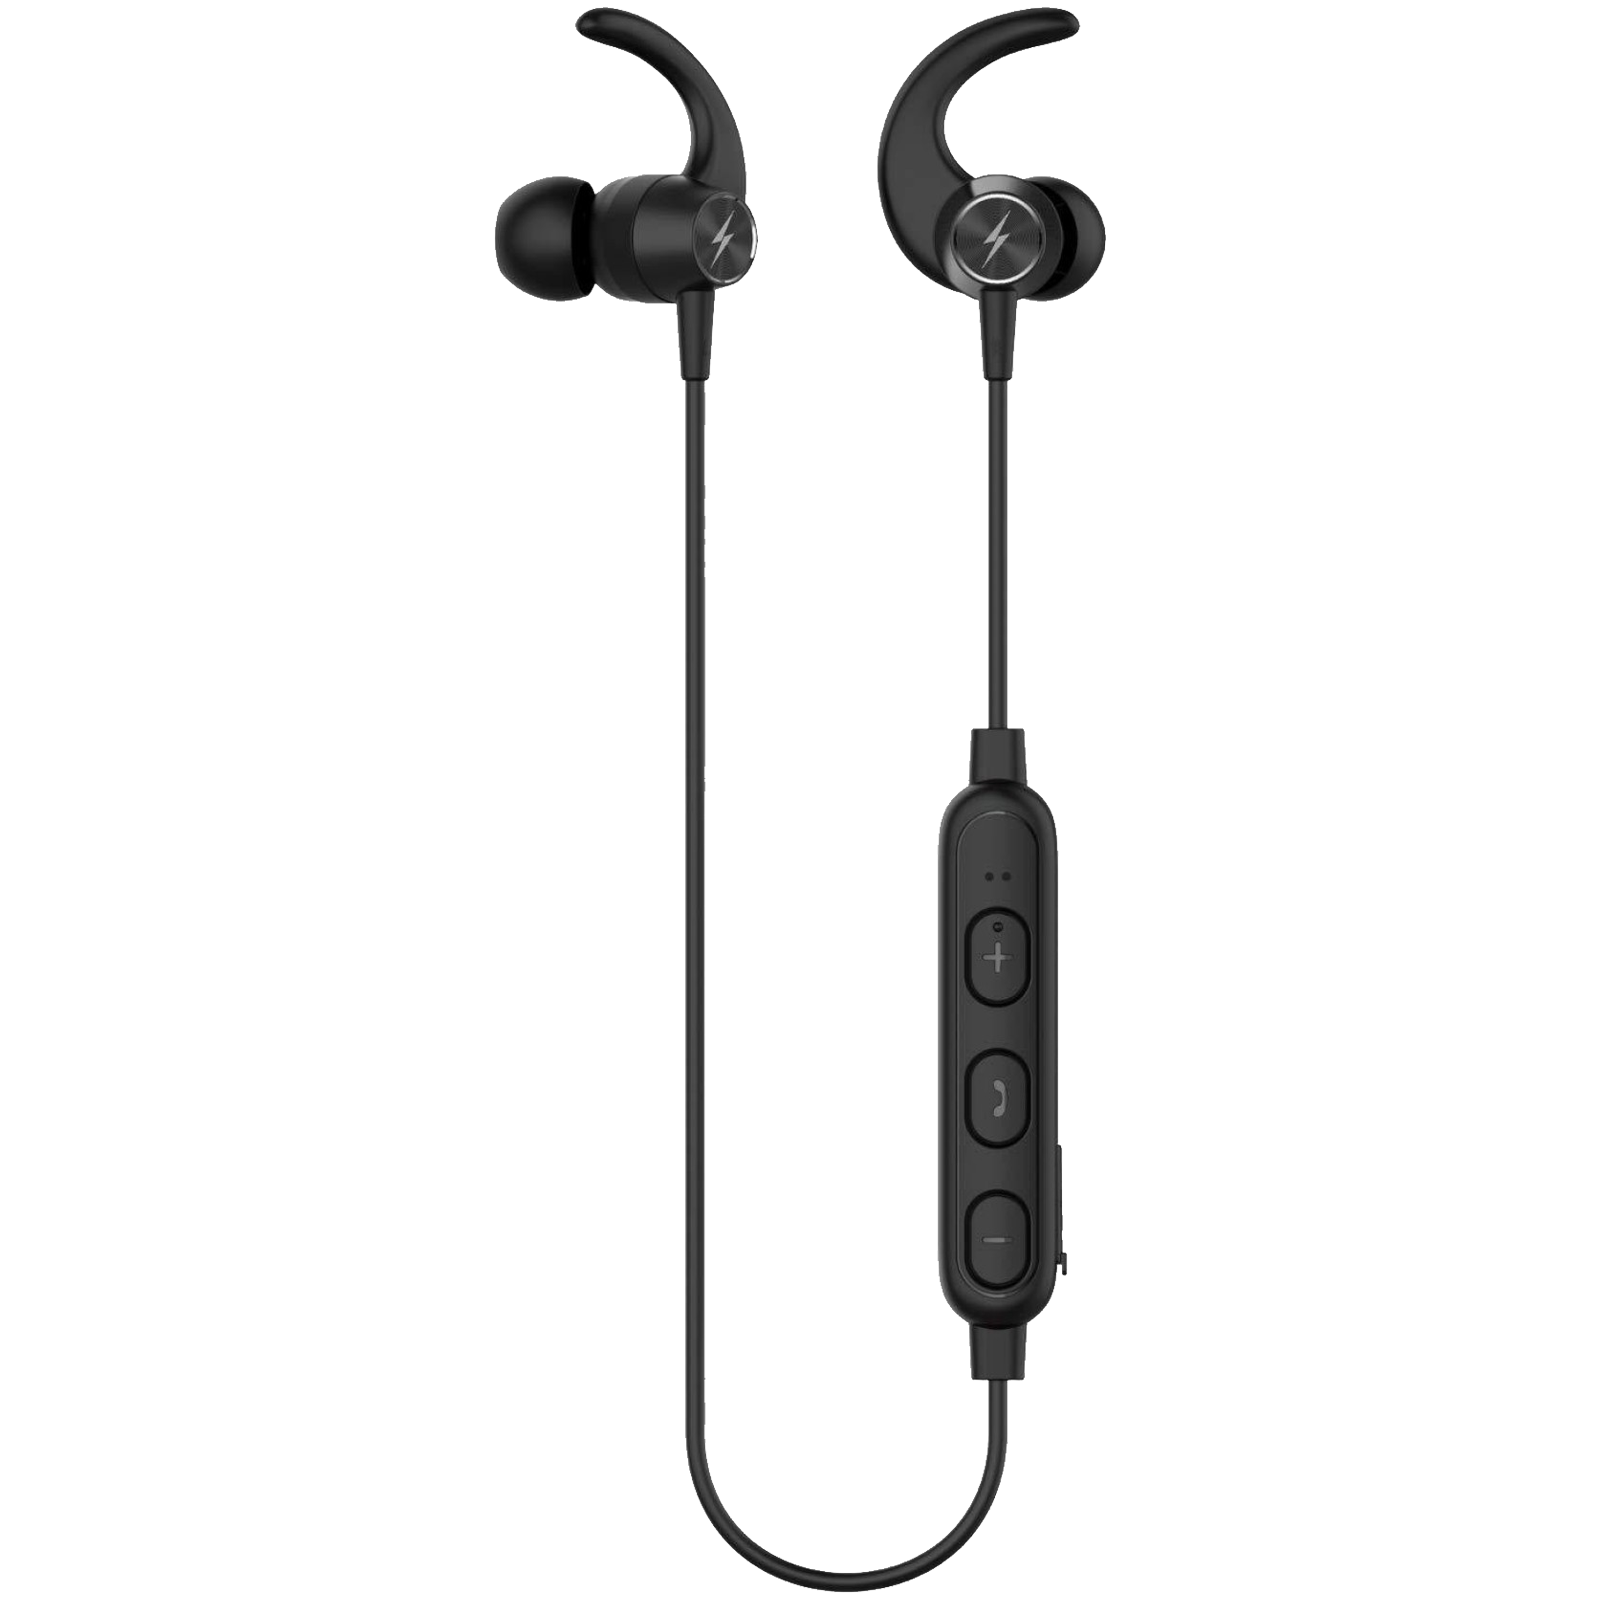 Fire-Boltt BN1201 In-Ear Noise Isolation Wireless Earphone with Mic (Bluetooth 5.0, Voice Assistant Supported, BN1200, Black)_1